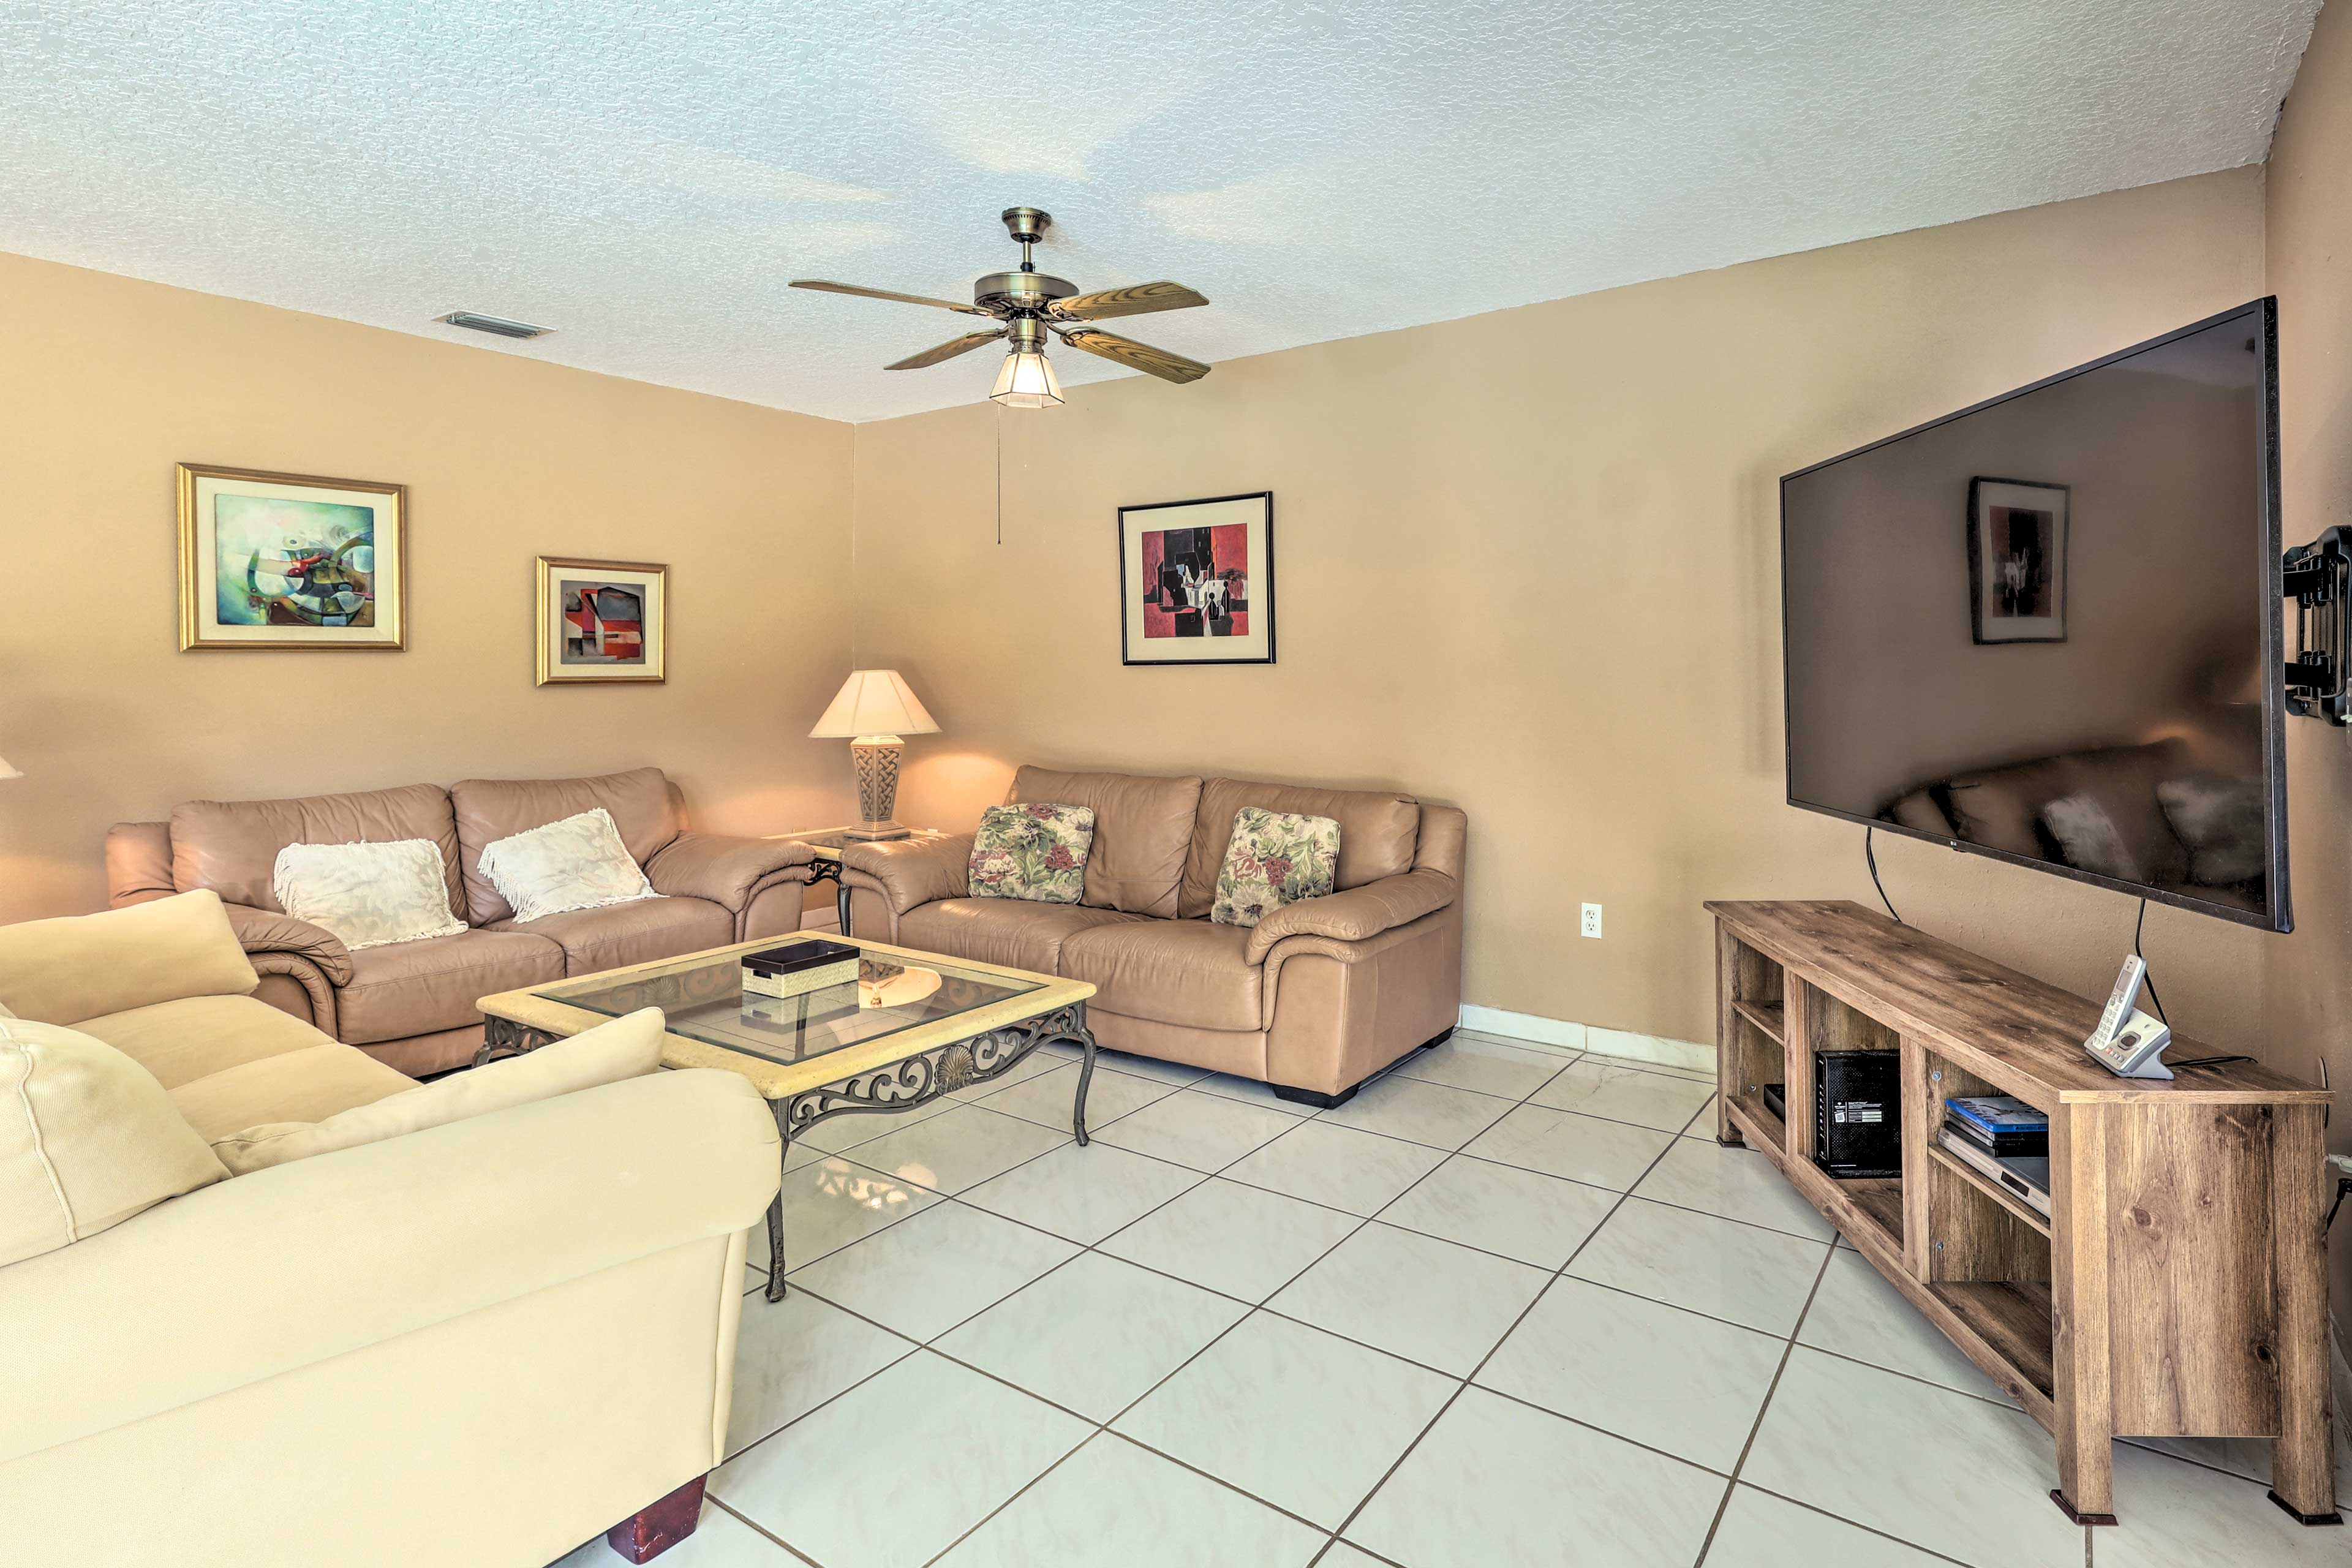 The second living area provides additional space to hang out.